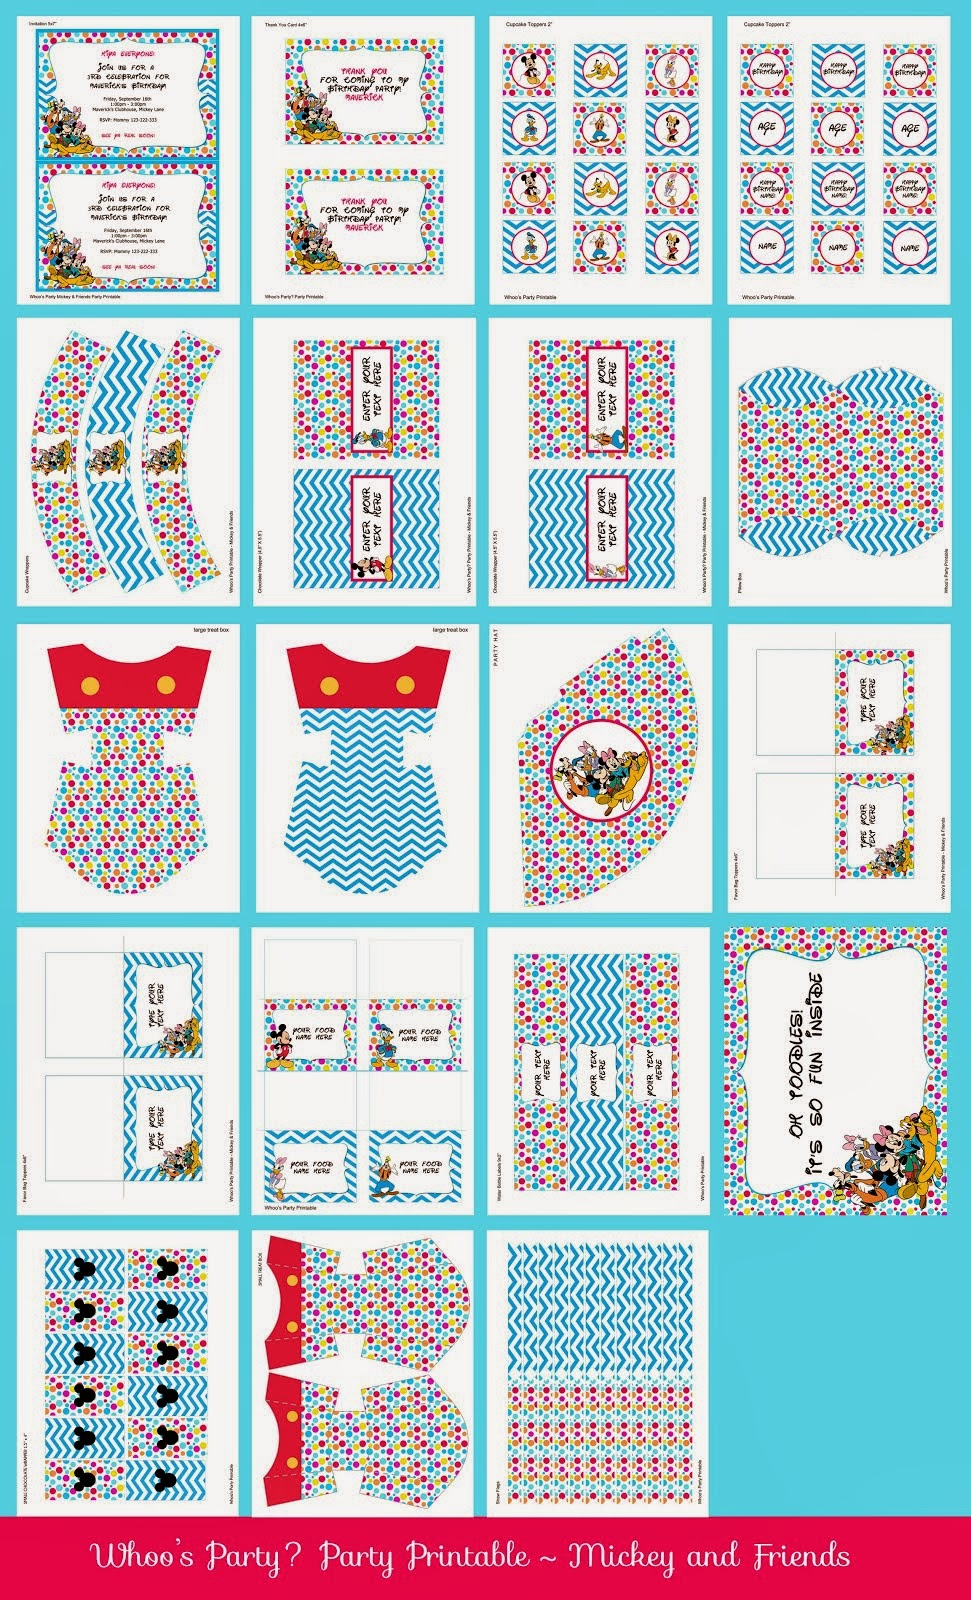 Mickey & Friends Party Printable